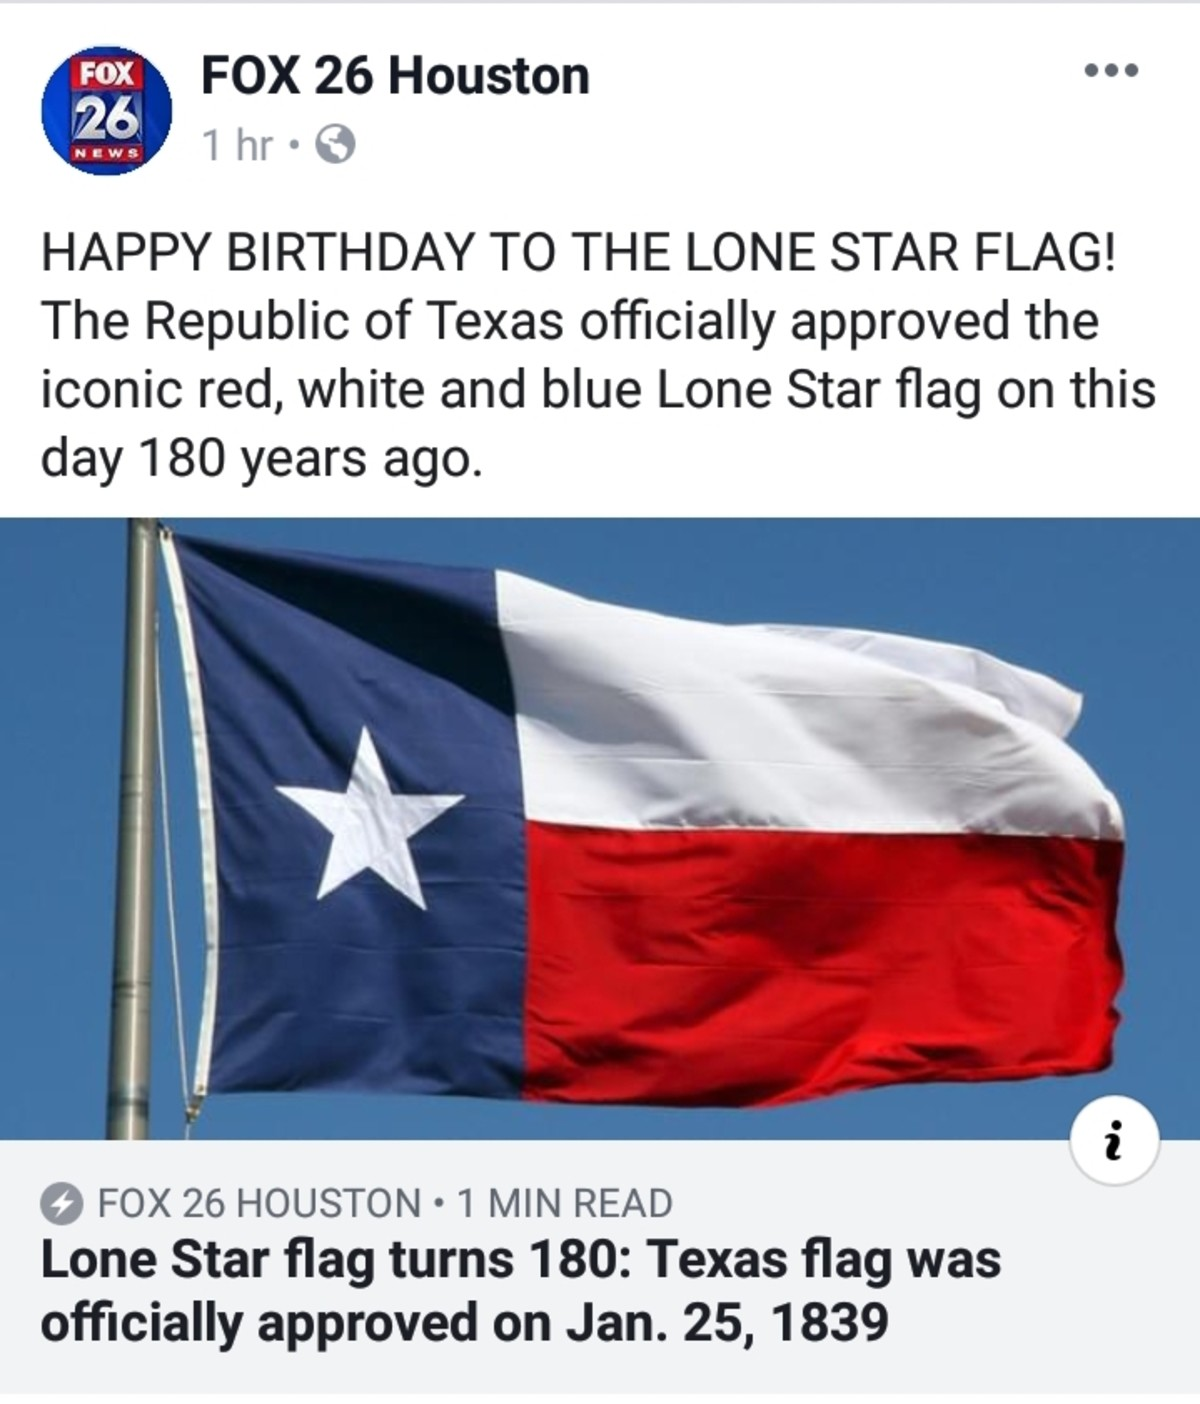 Lone Star flag is 180 years old, y'all. http://www.fox26houston.com/news/lone-star-flag-turns-180-texas-flag-was-officially-approved-on-jan-25-1839 join list: T